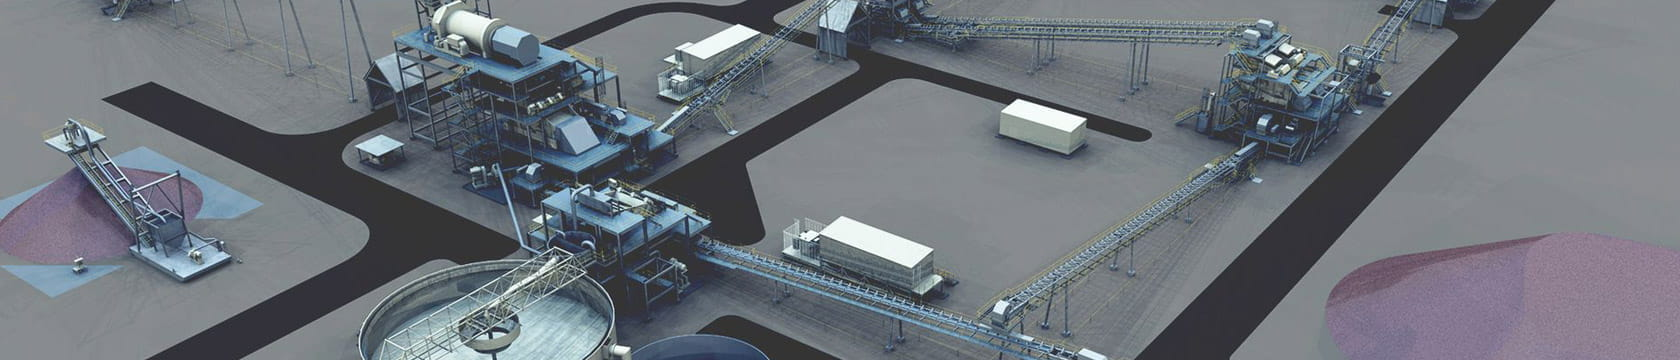 aerial view of mineral processing infrastructure